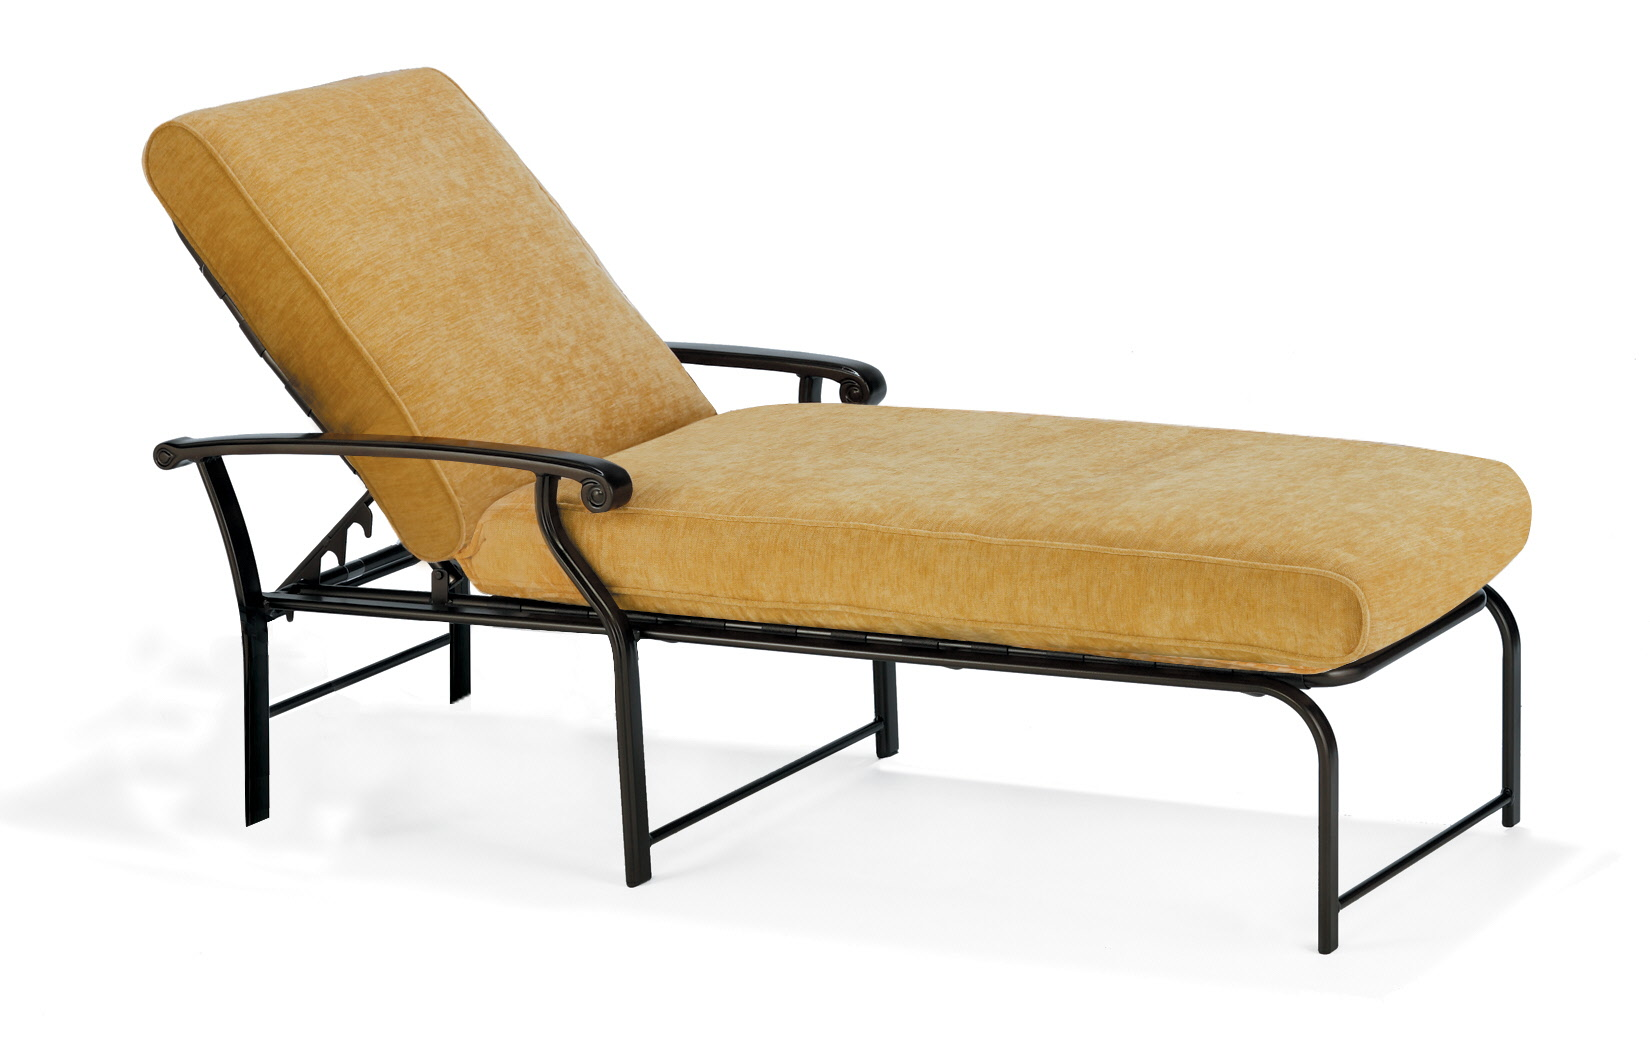 M26009  Madero Cushion Collection Chaise Lounge Chair